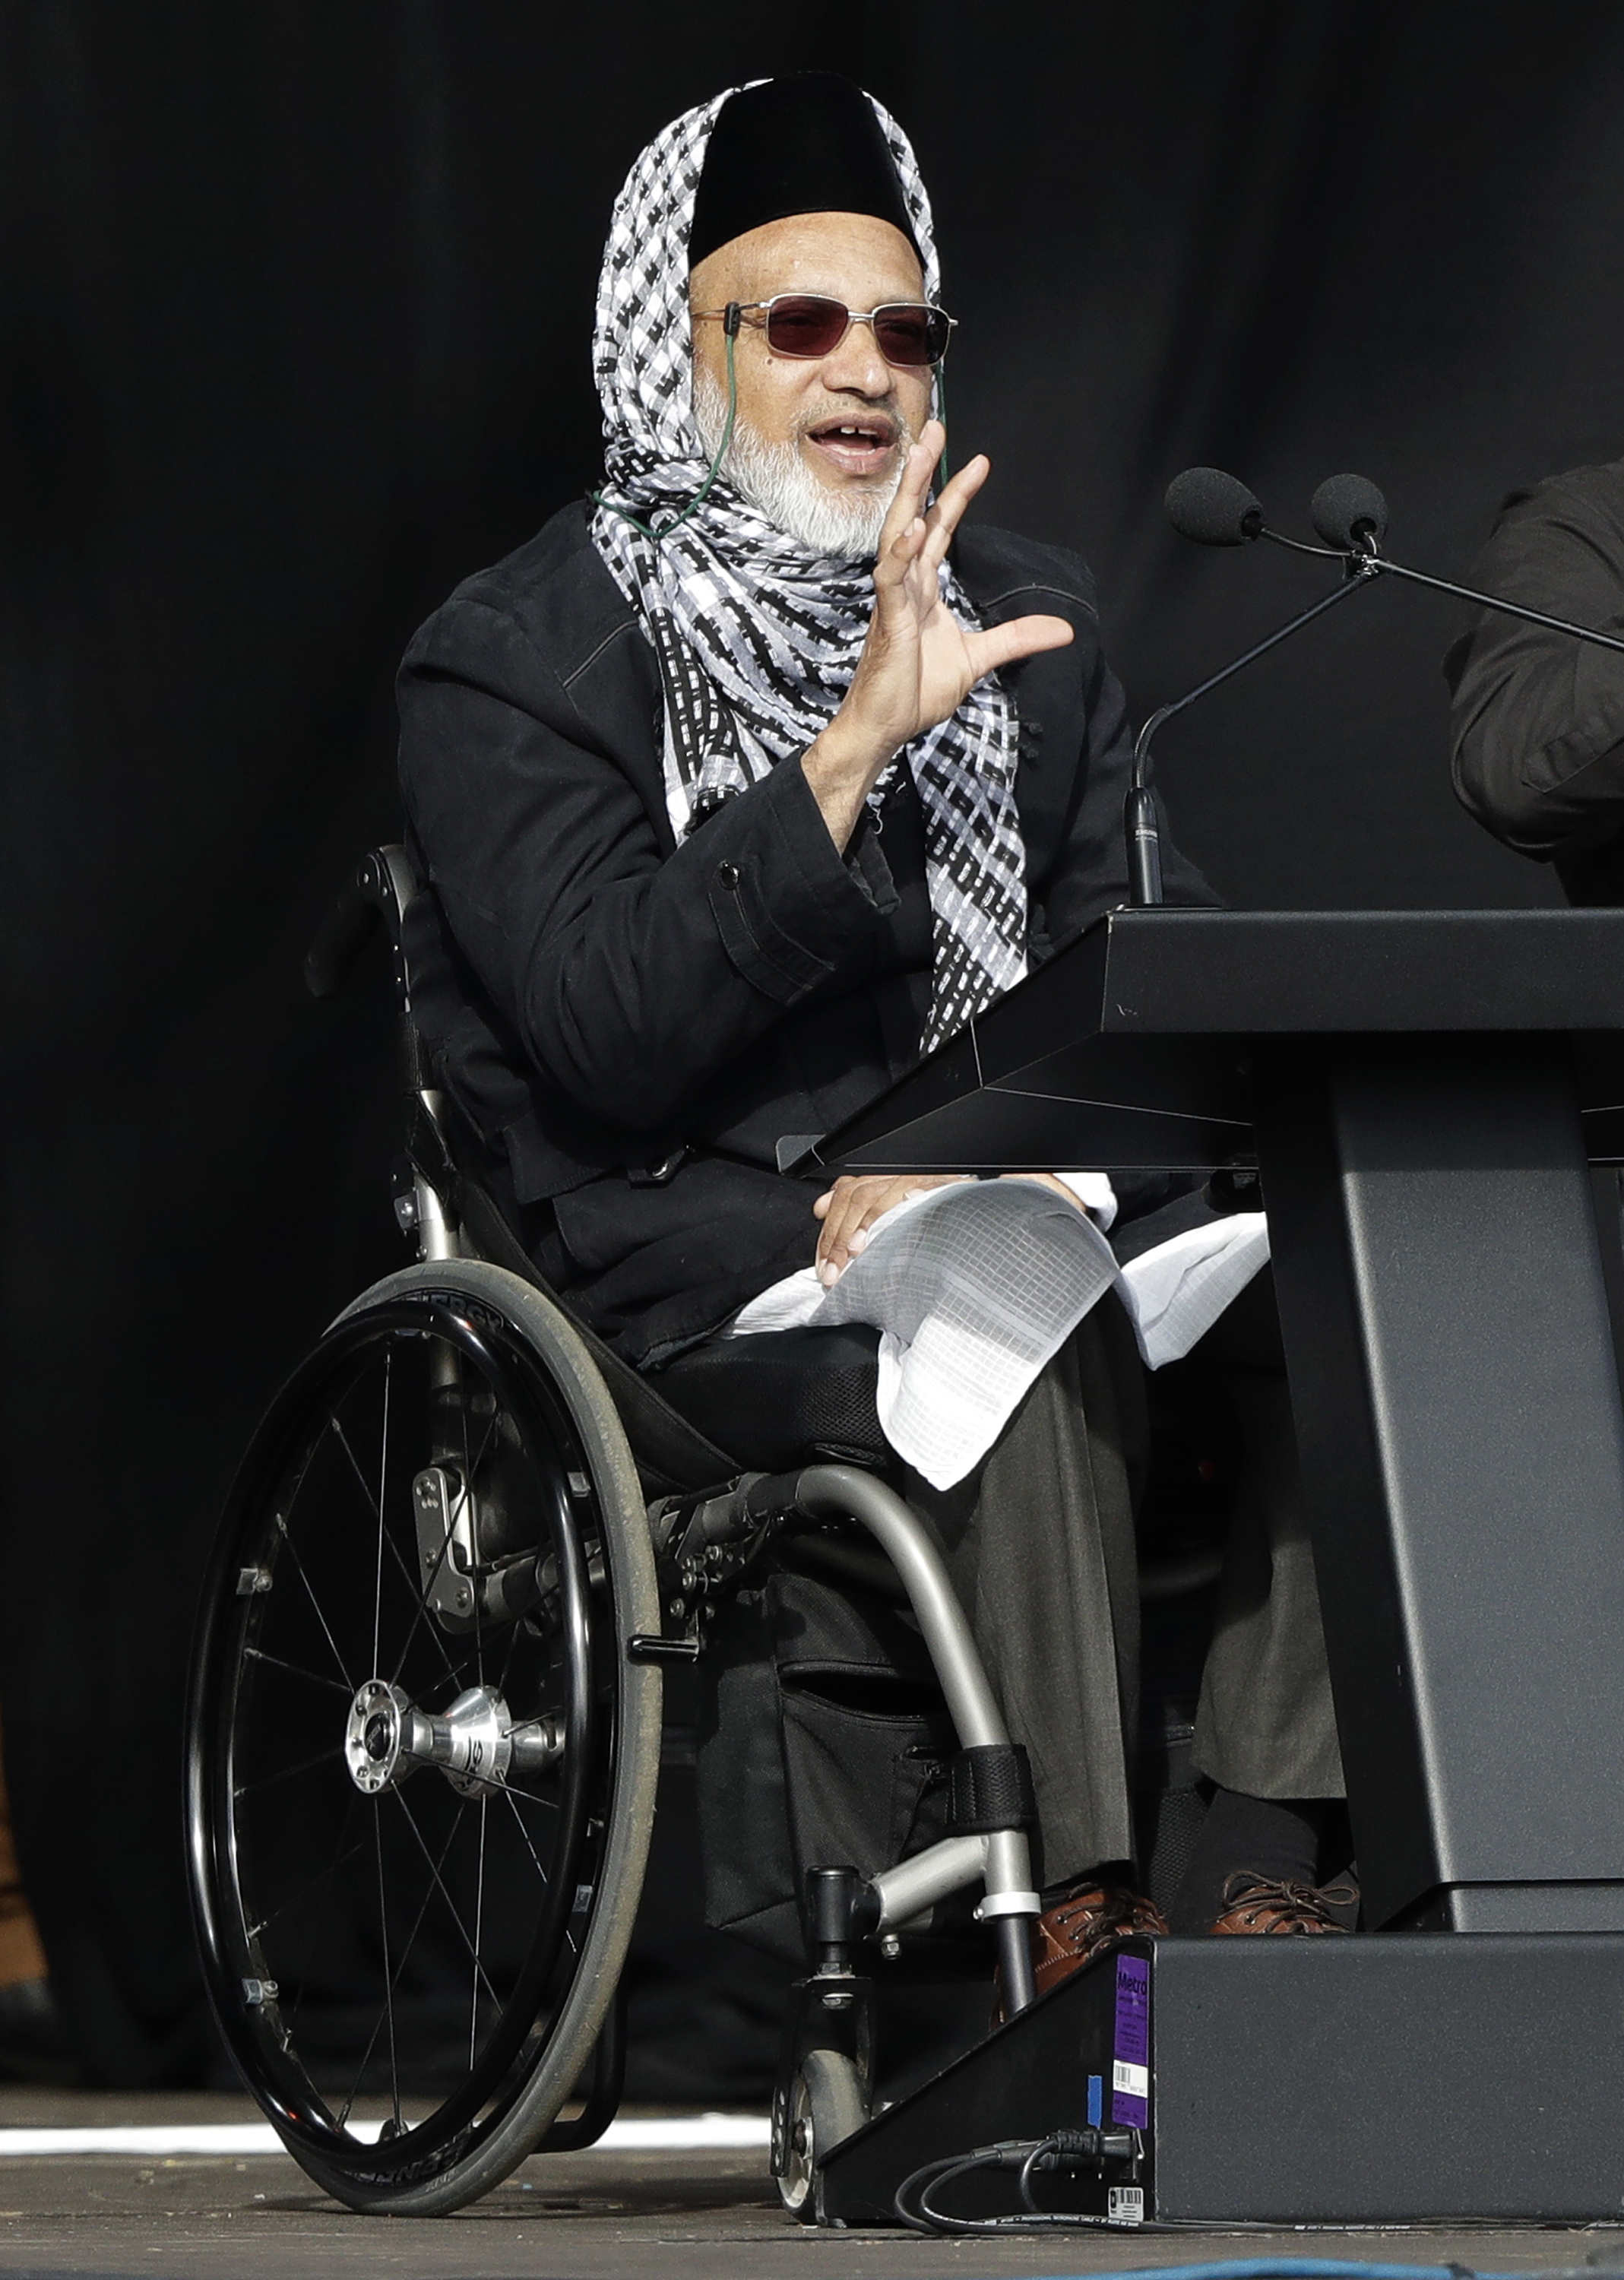 Mosque shooting survivor Farid Ahmed addresses the national remembrance service at Hagley Park for the victims of the March 15 mosques terrorist attack in Christchurch, New Zealand, Friday, March 29, 2019. (AP Photo/Mark Baker)